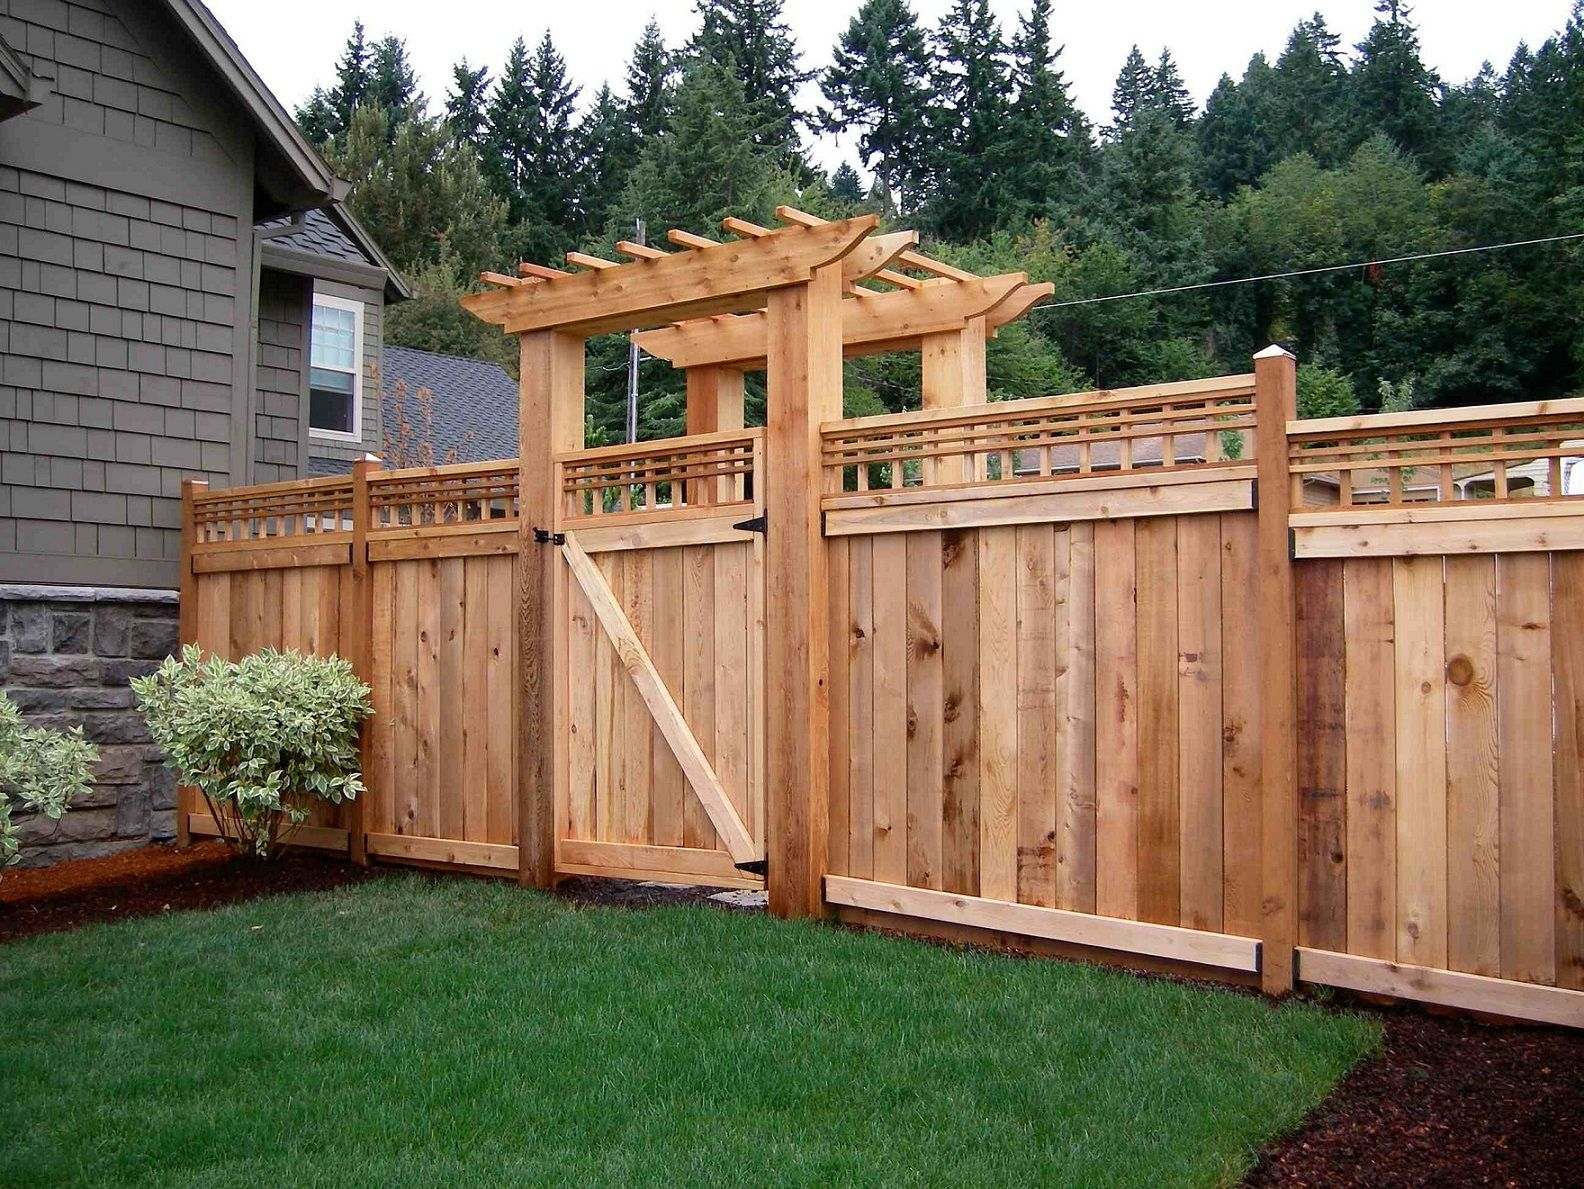 Fence Gate Design Ideas garden decor creative timber wooden driveway gate for your outdoor home decorating design ideas 17 Best Images About Gates On Pinterest Entry Gates Moon Gate And Wooden Gates Garden Fences And Gates Ideas 3